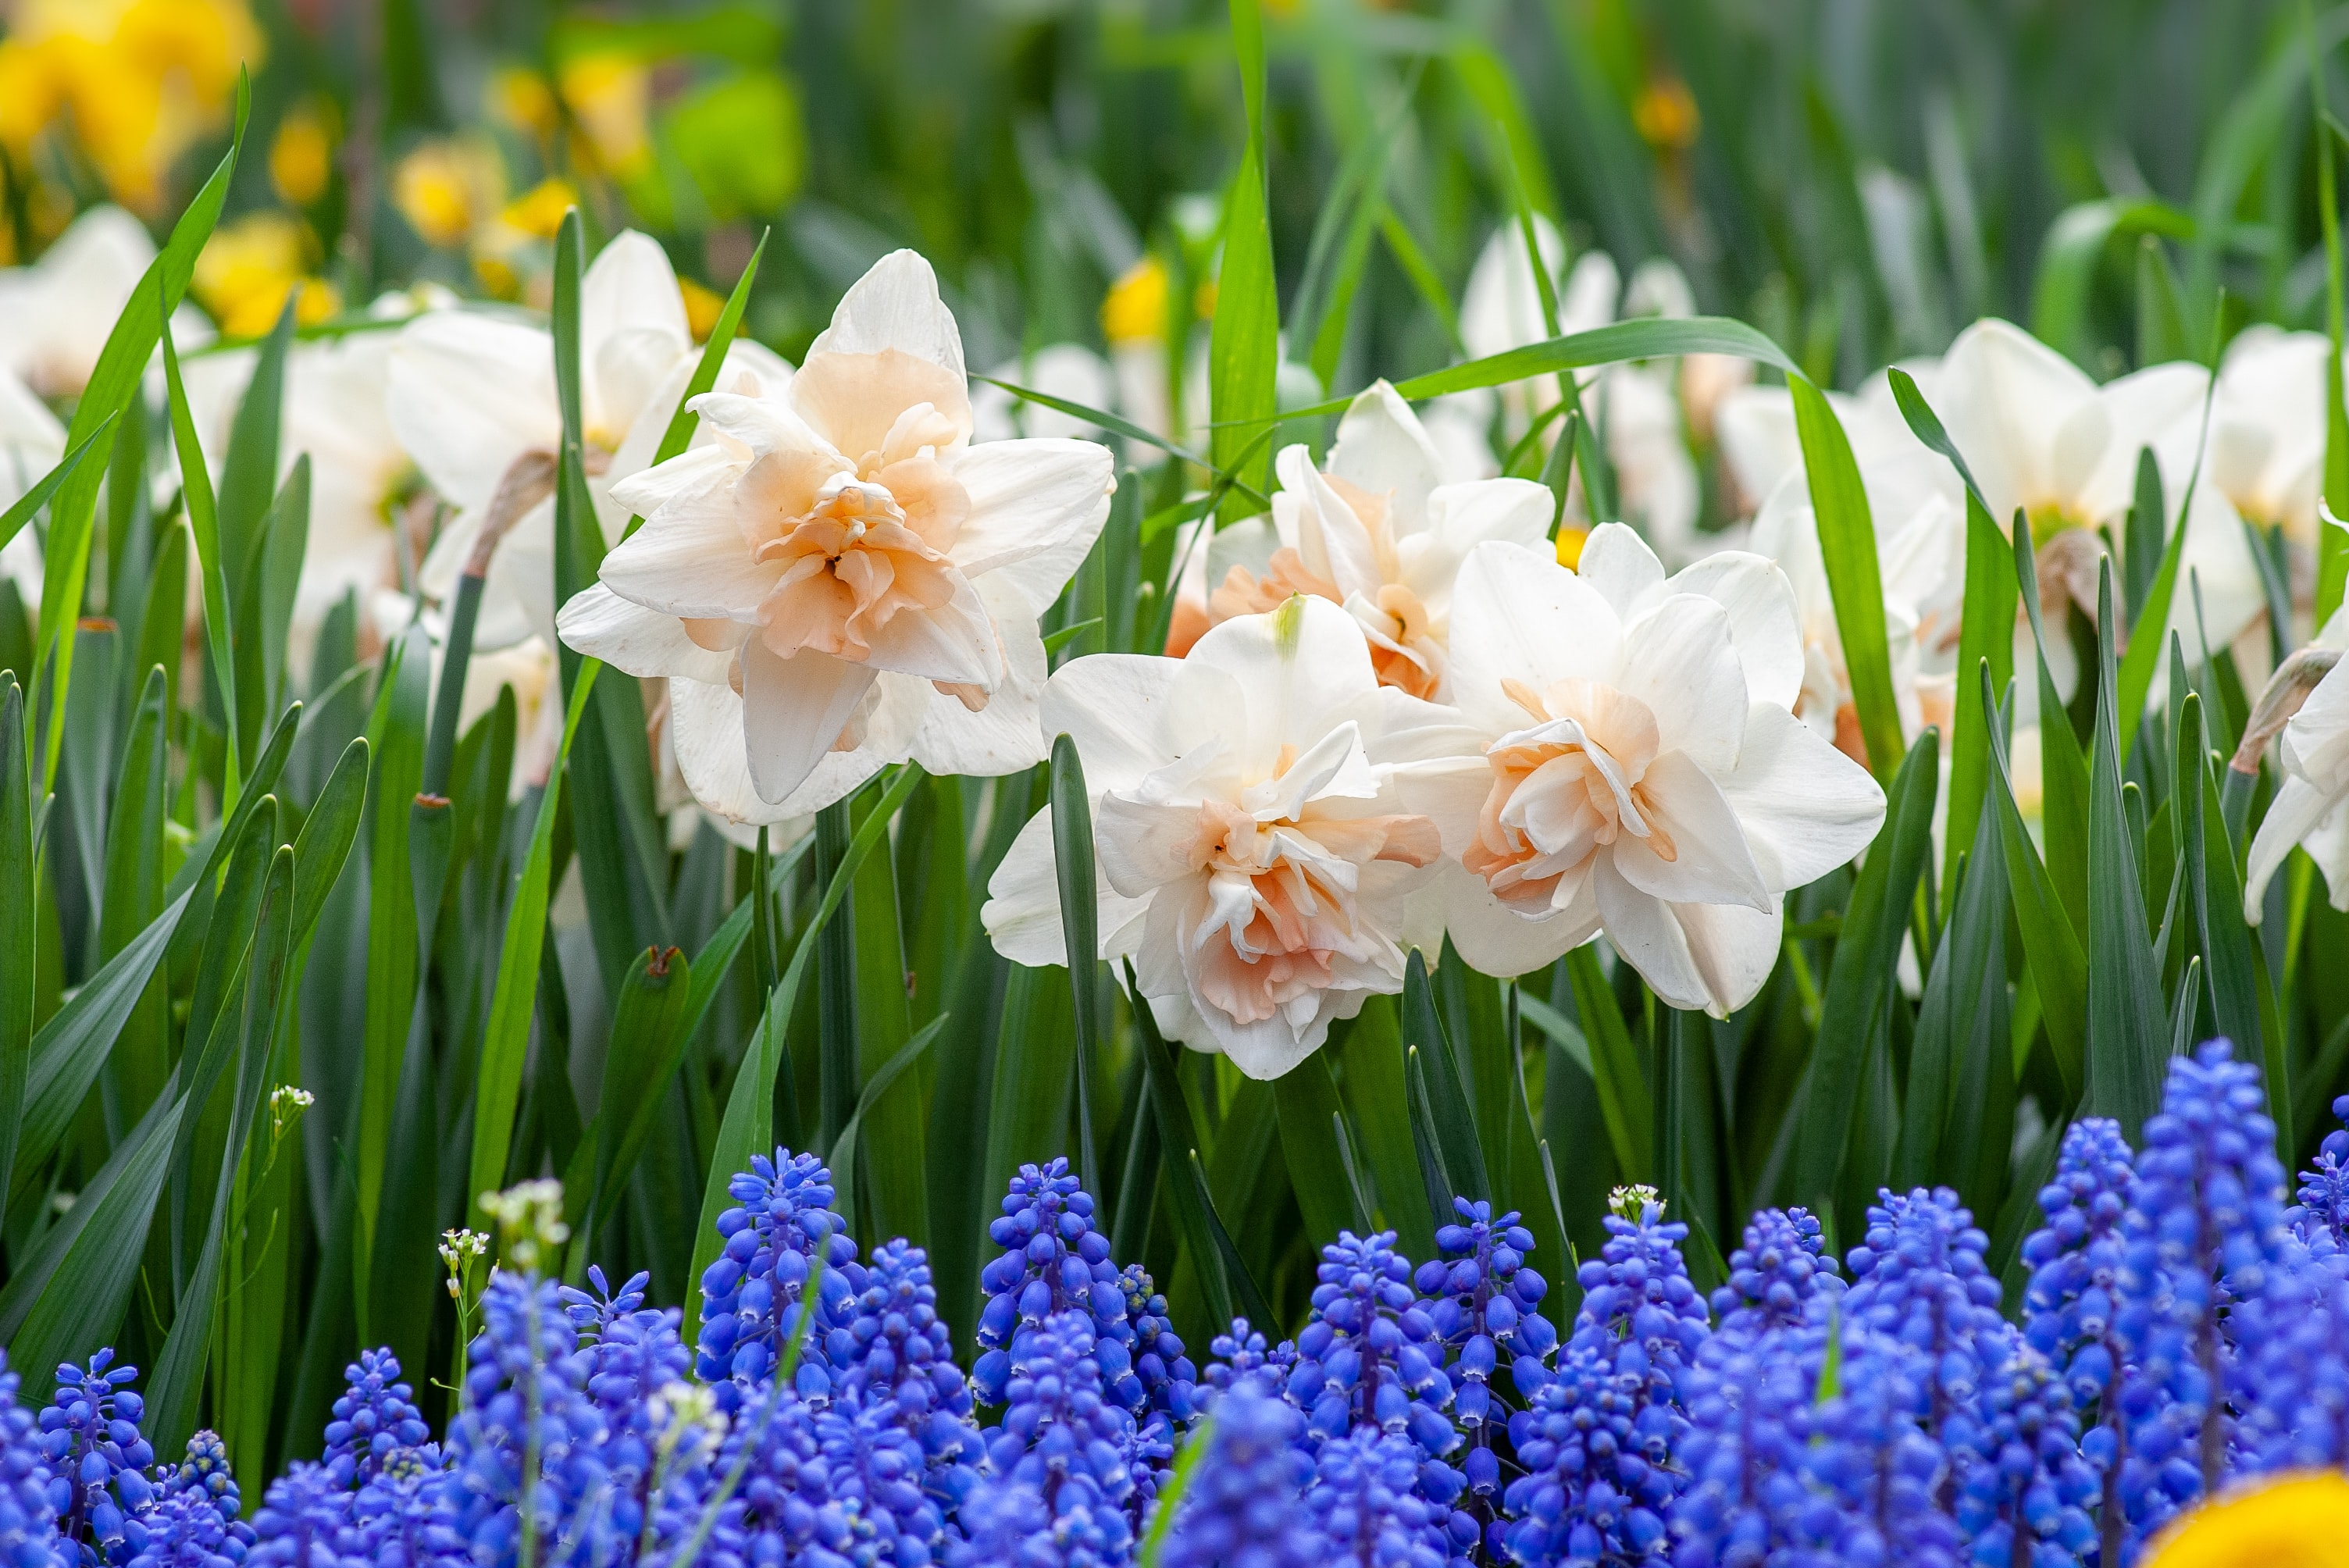 Seasonal gardening: Why Spring blooms are beautiful